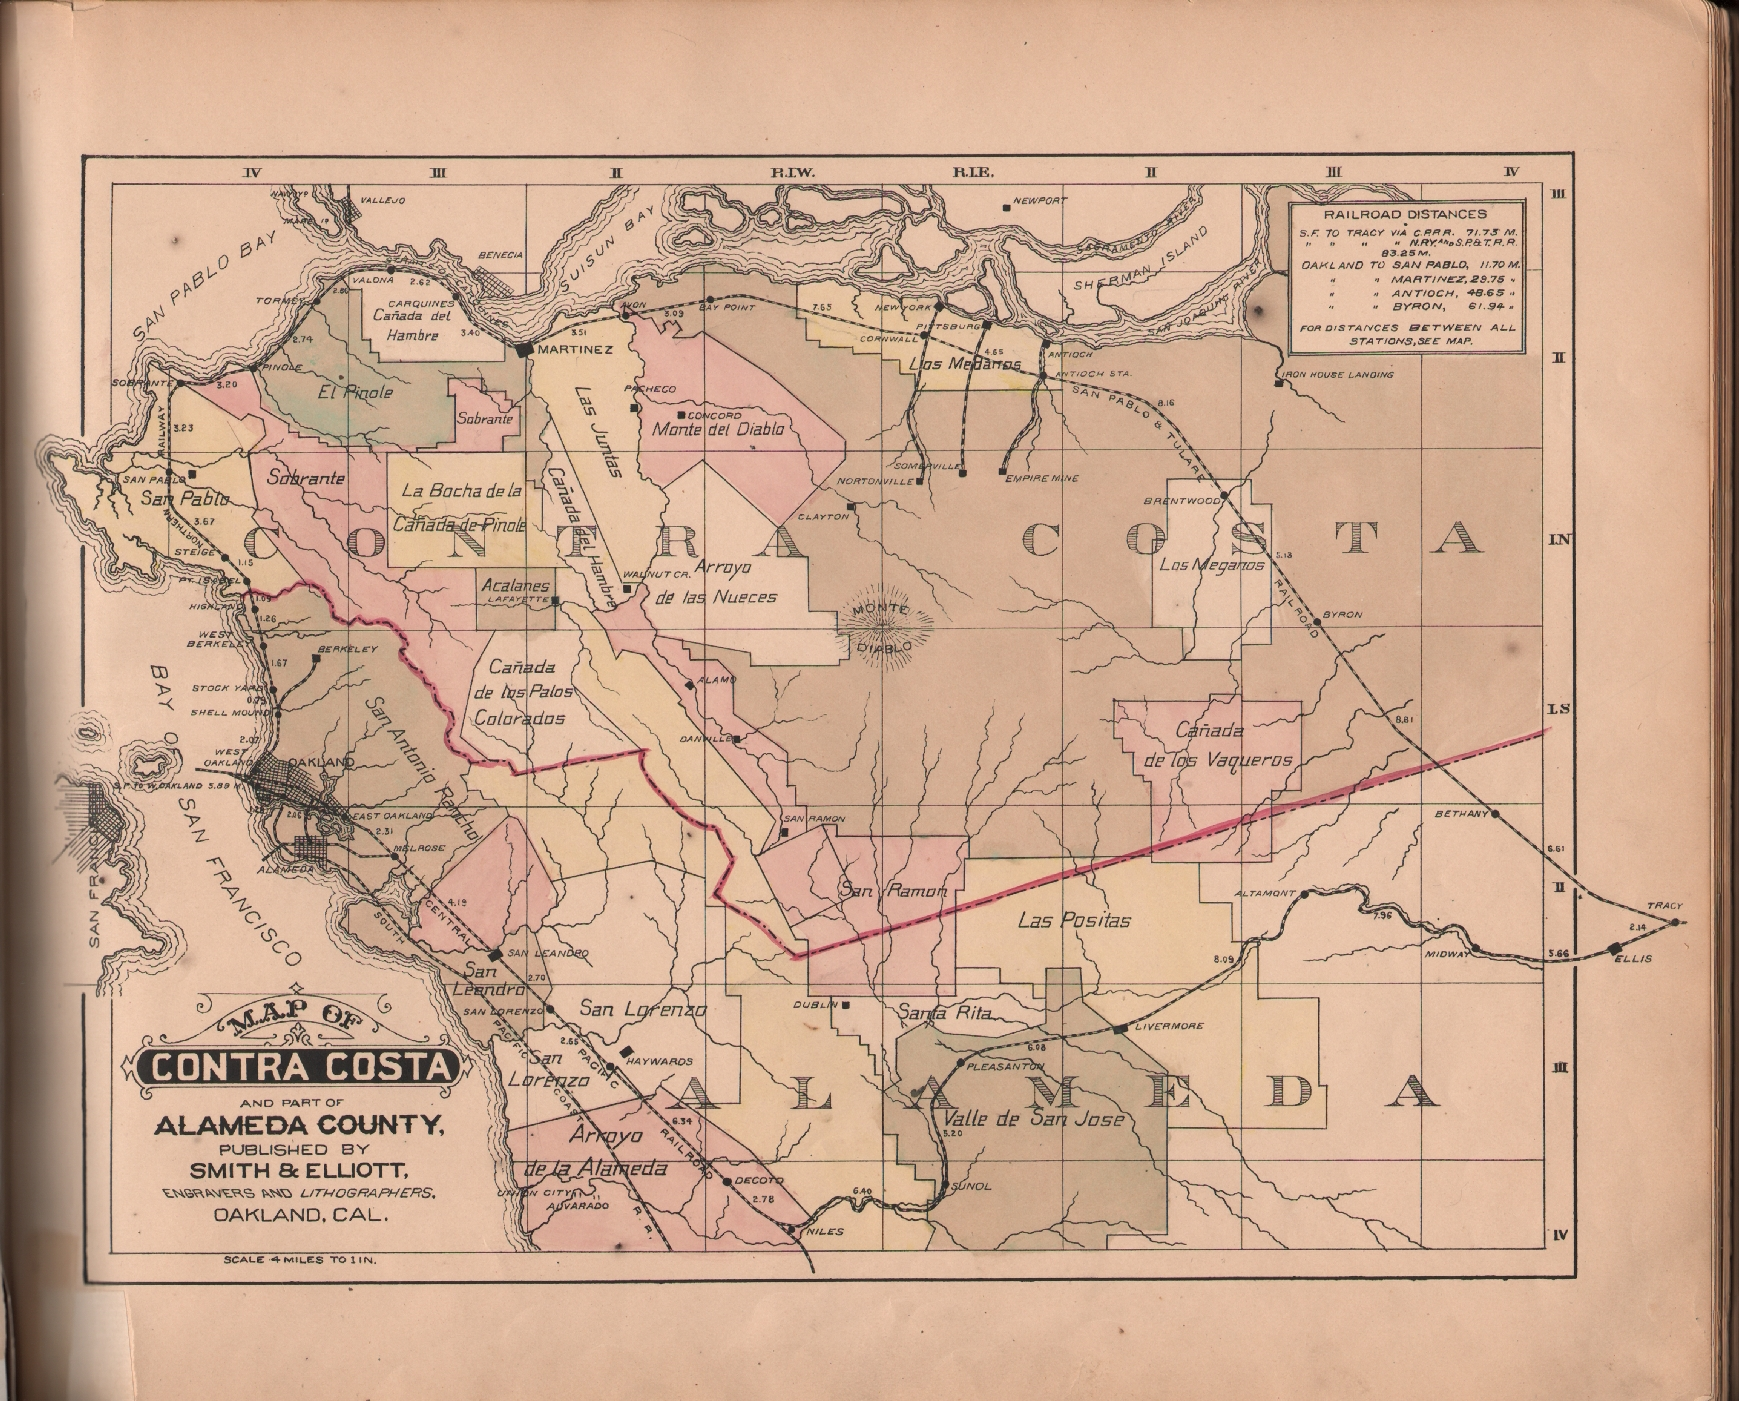 Illustrations Of Contra Costa Co County California With - Map of contra costa county ca